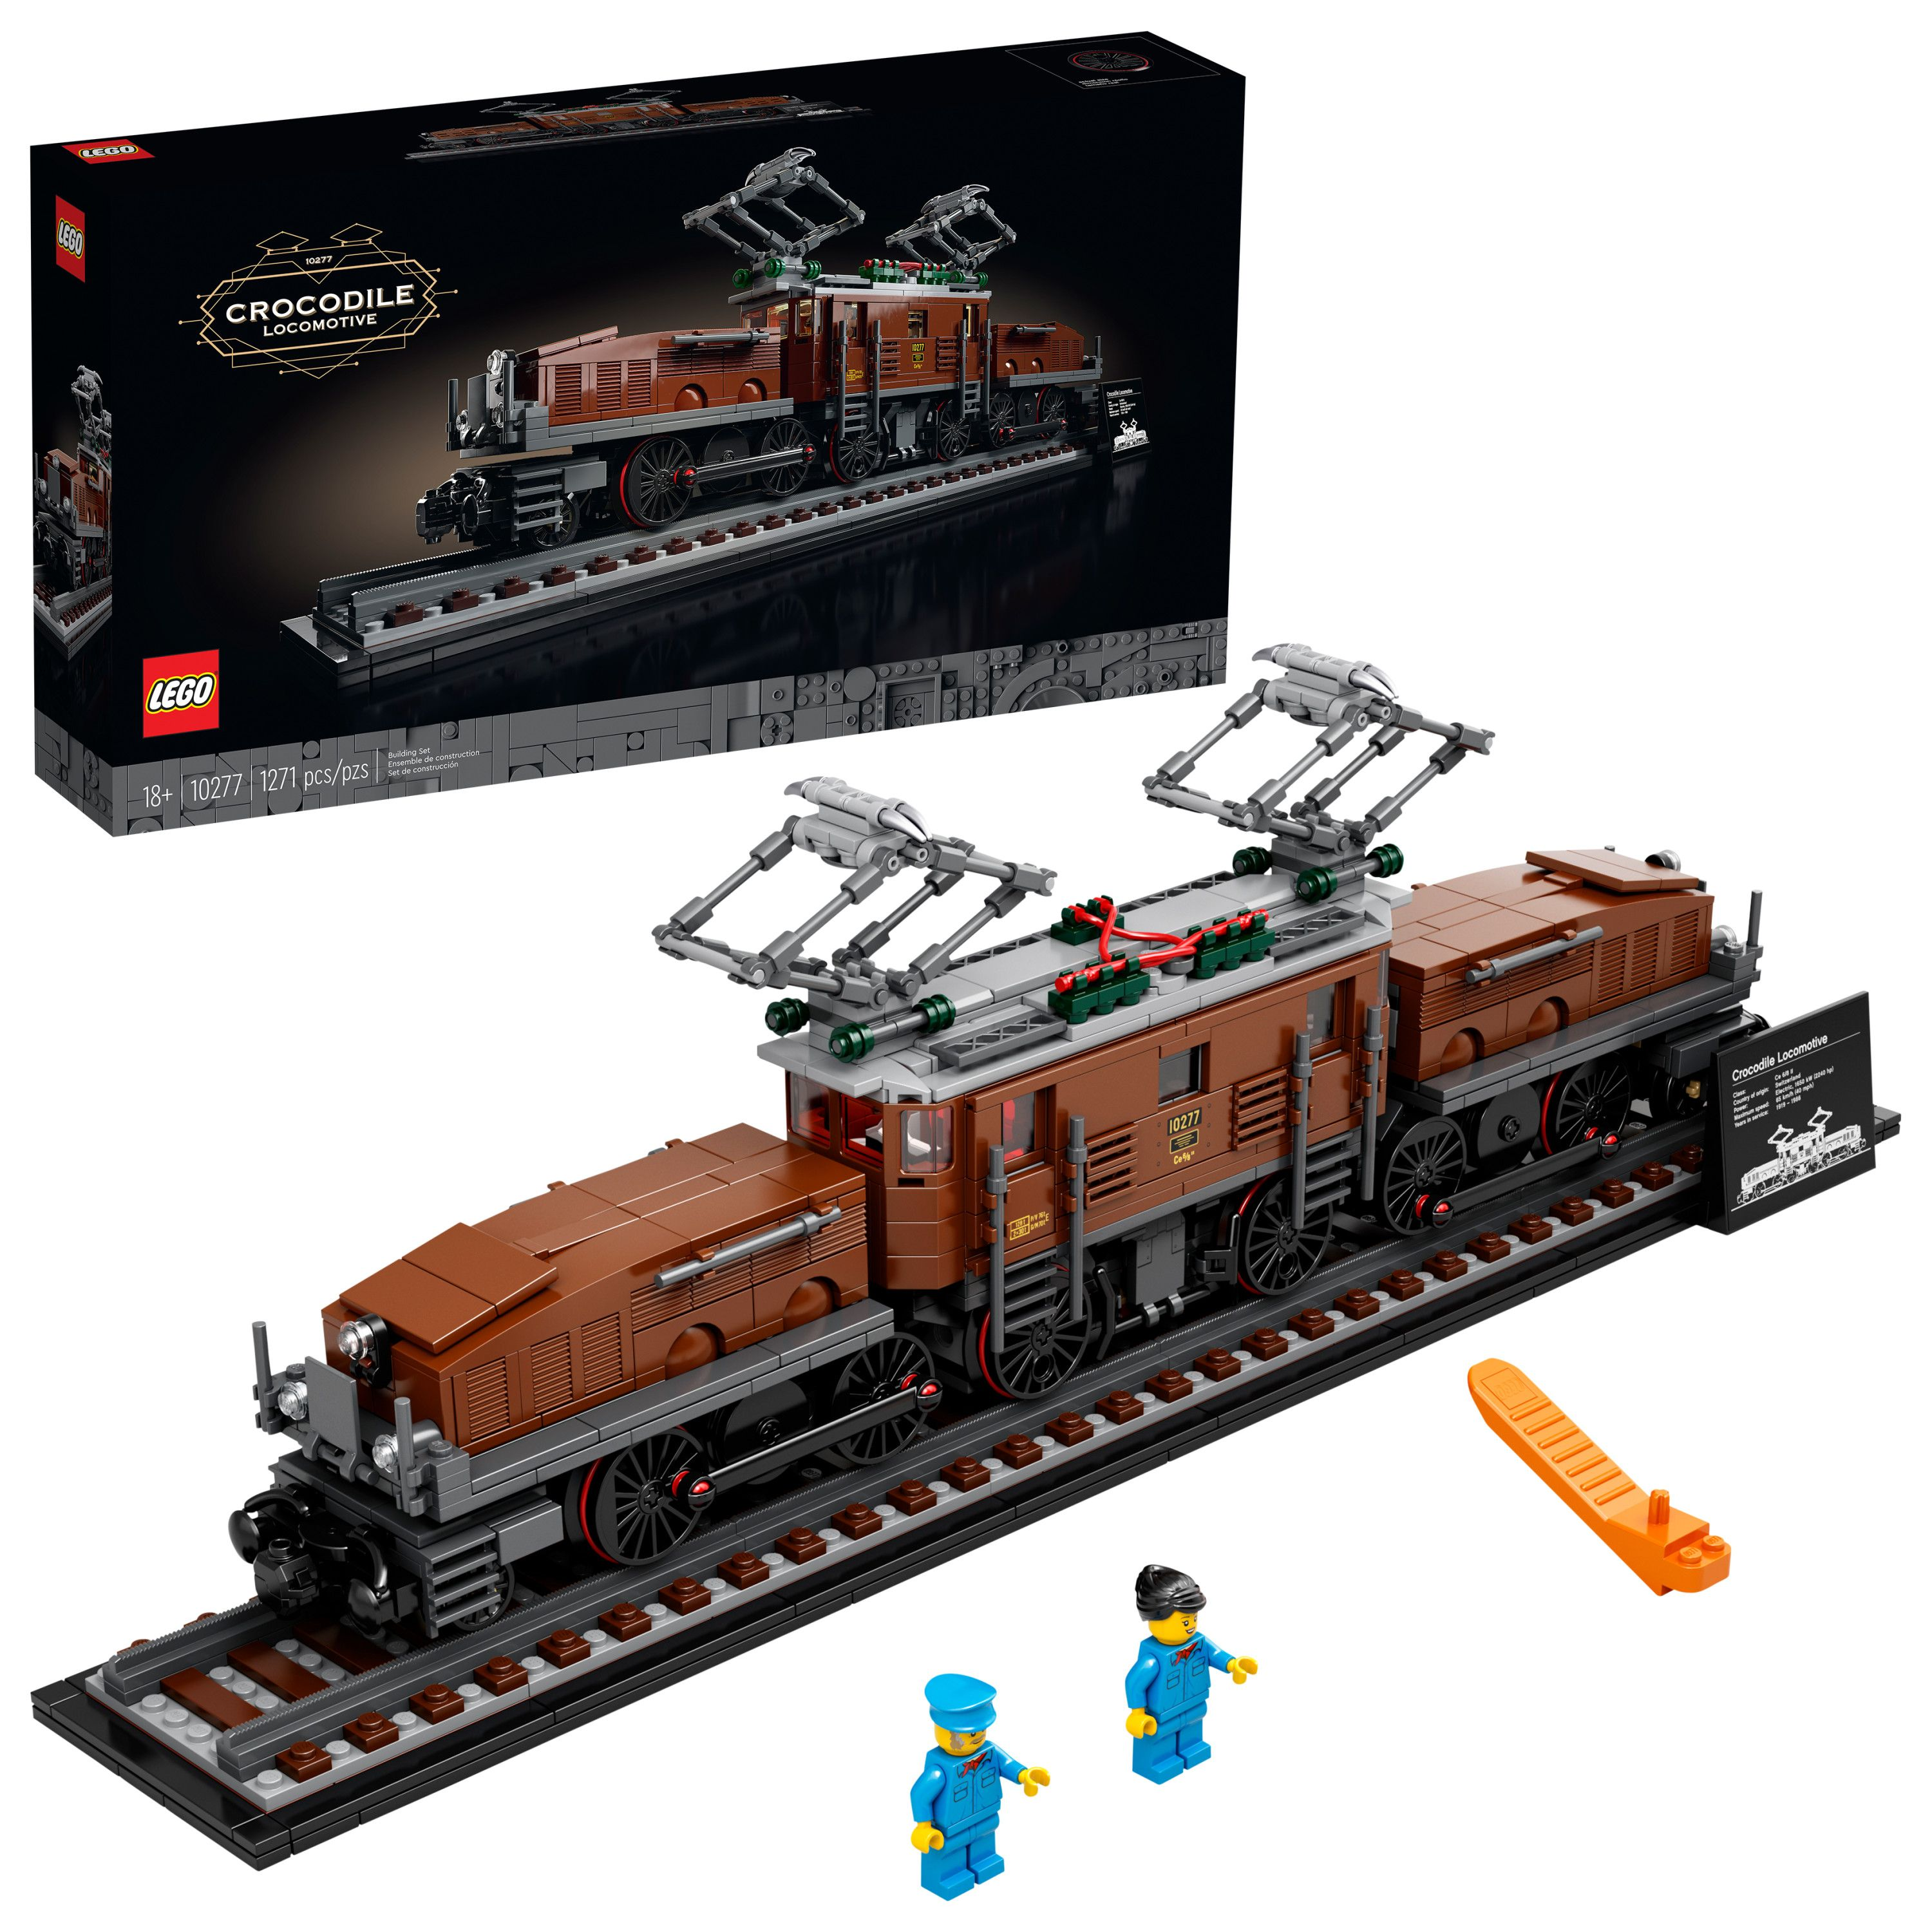 Lego Crocodile Locomotive 10277 Building Toy Relaxing Project For Adults Who Love Model Kits And Train Sets 1 271 Pieces Walmart Com In 2020 Toy Trains Set Train Sets Model Building Kits